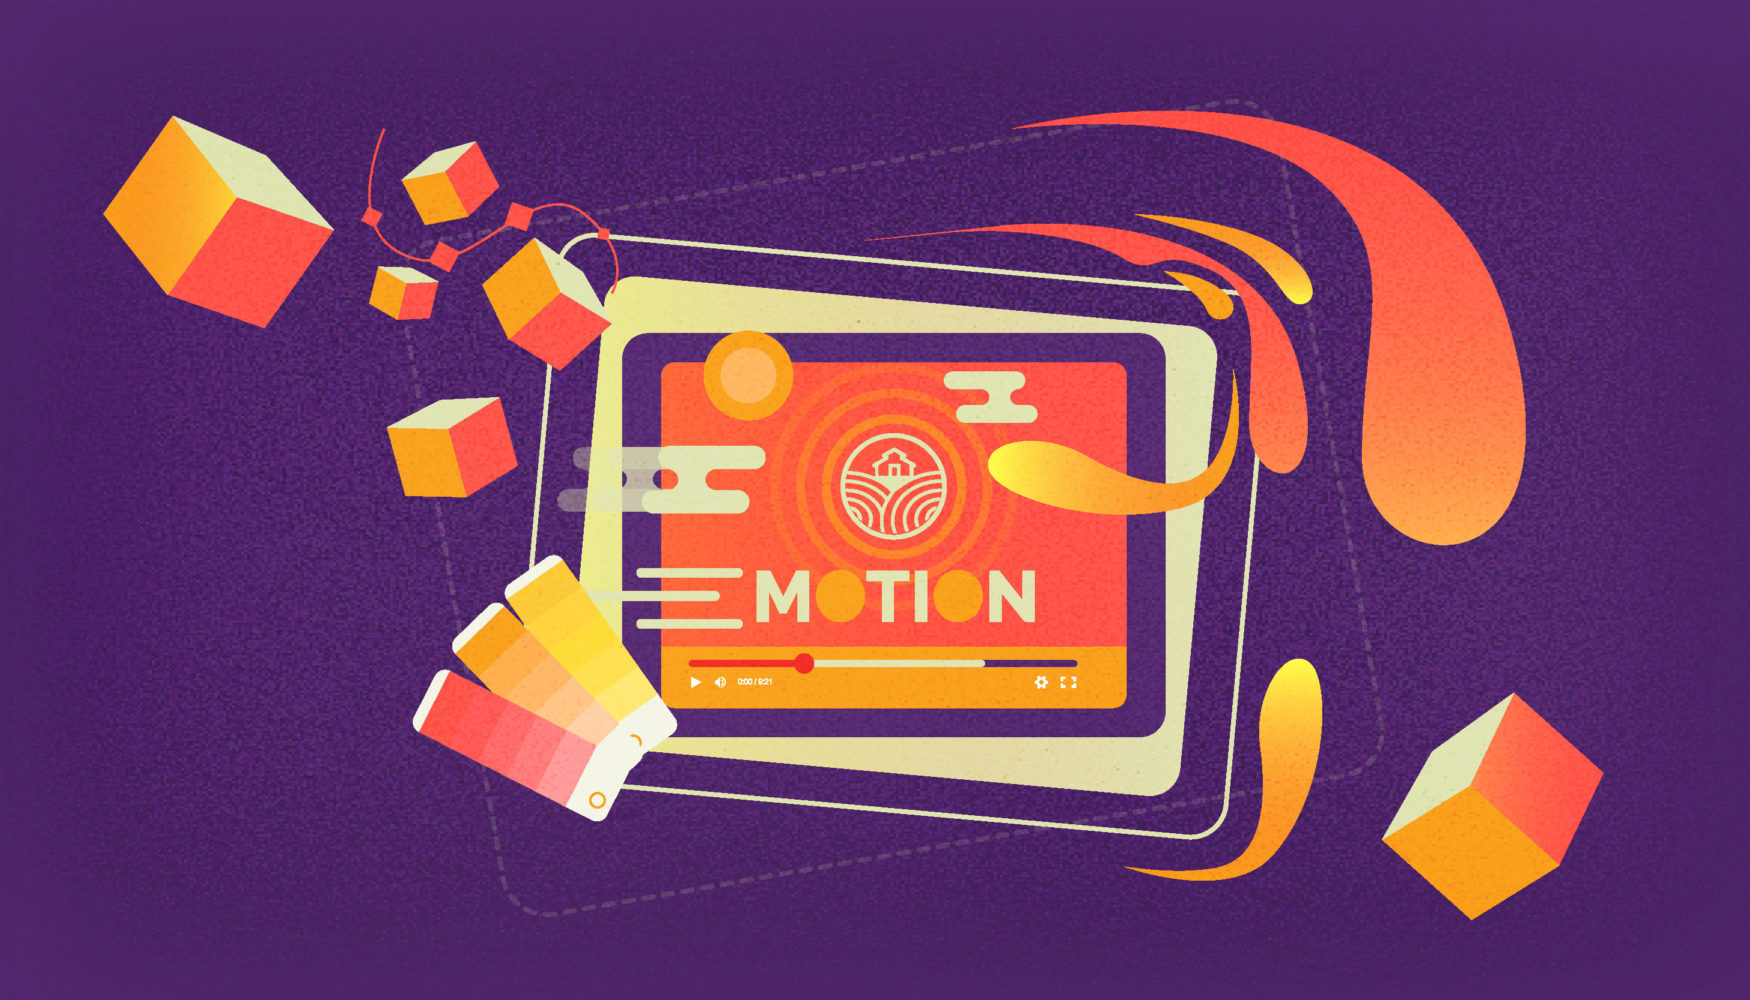 5 Motion Graphics Trends To Follow